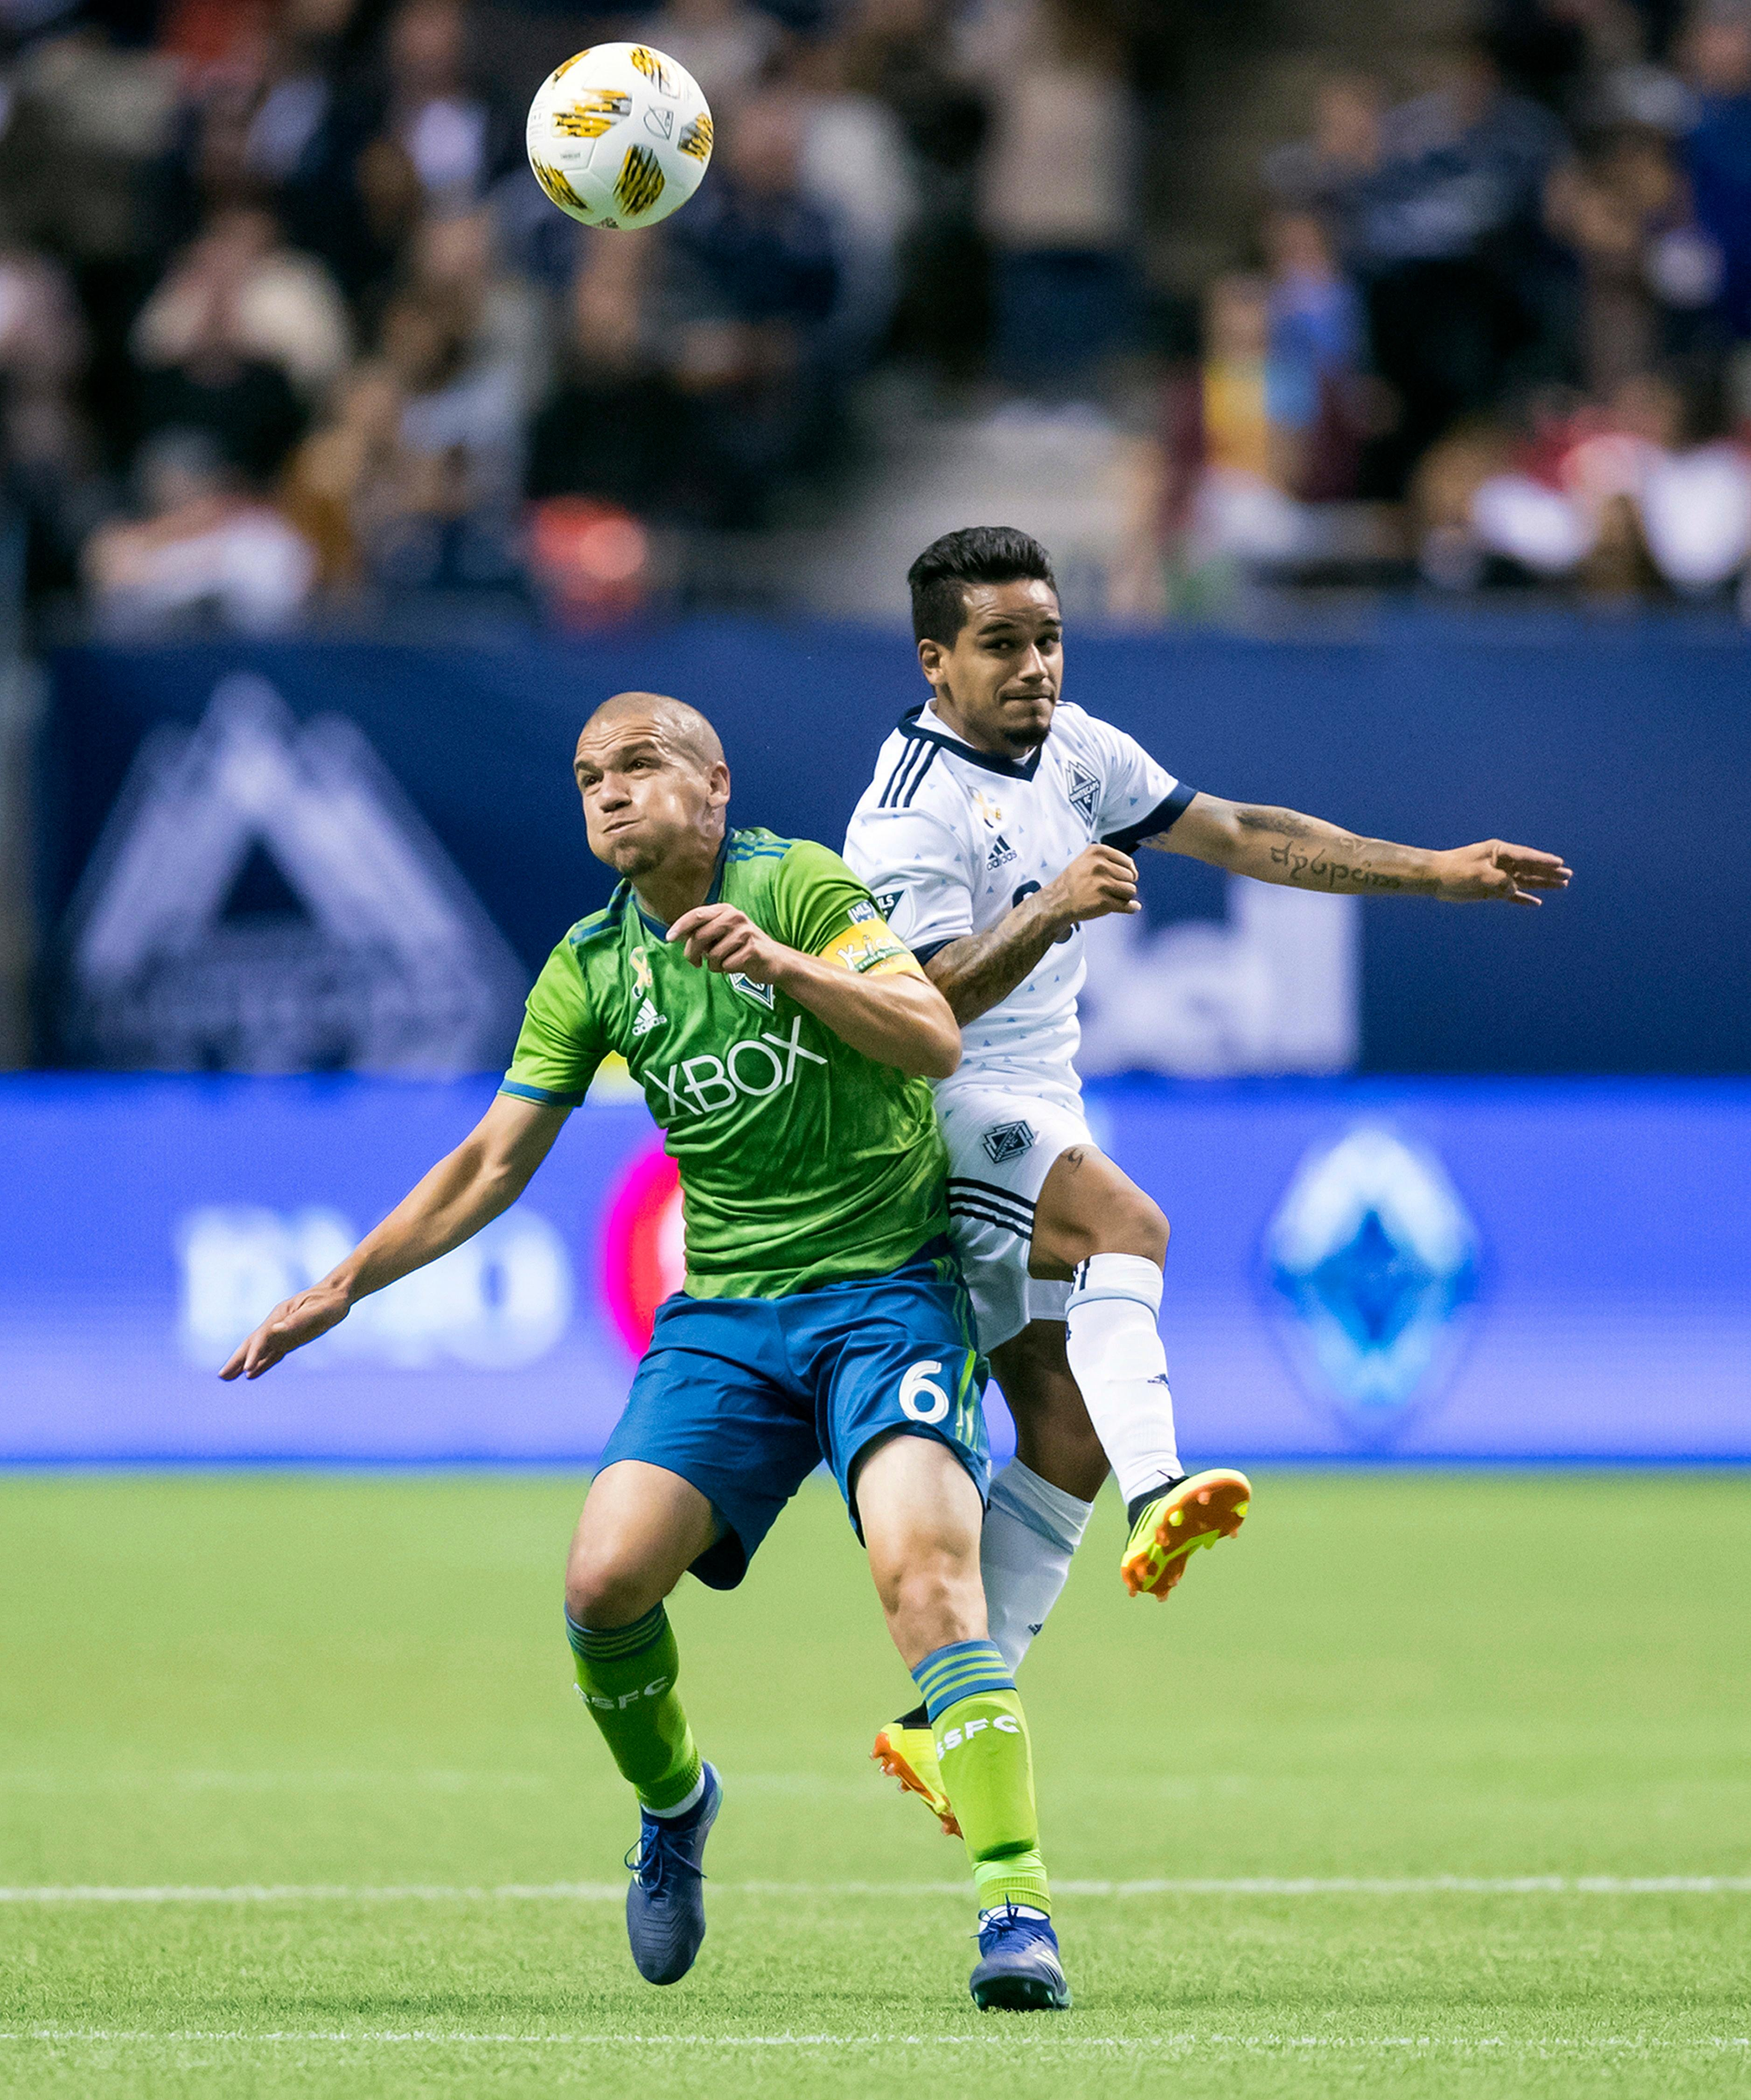 Seattle Sounders' Osvaldo Alonso, left, and Vancouver Whitecaps' Cristian Techera collide during the first half of an MLS soccer match, Saturday, Sept. 15, 2018, in Vancouver, British Columbia. (Darryl Dyck/The Canadian Press via AP)